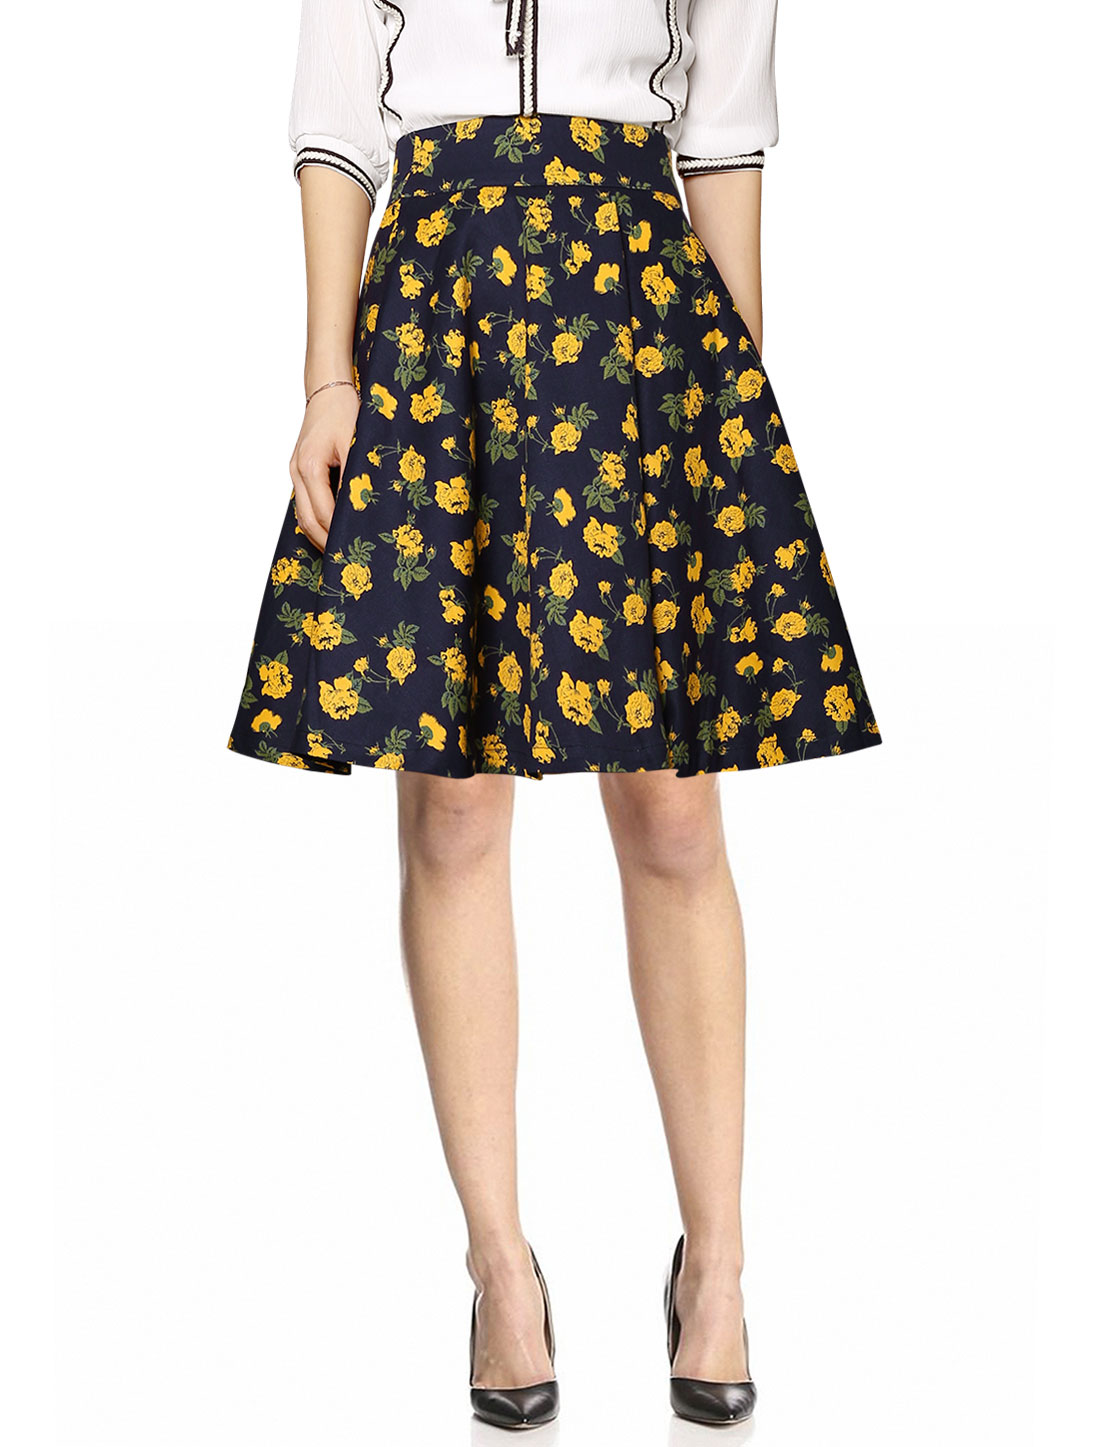 Lady Swing Flower Prints High Waist Above Knee Full Skirts Navy Blue Yellow L